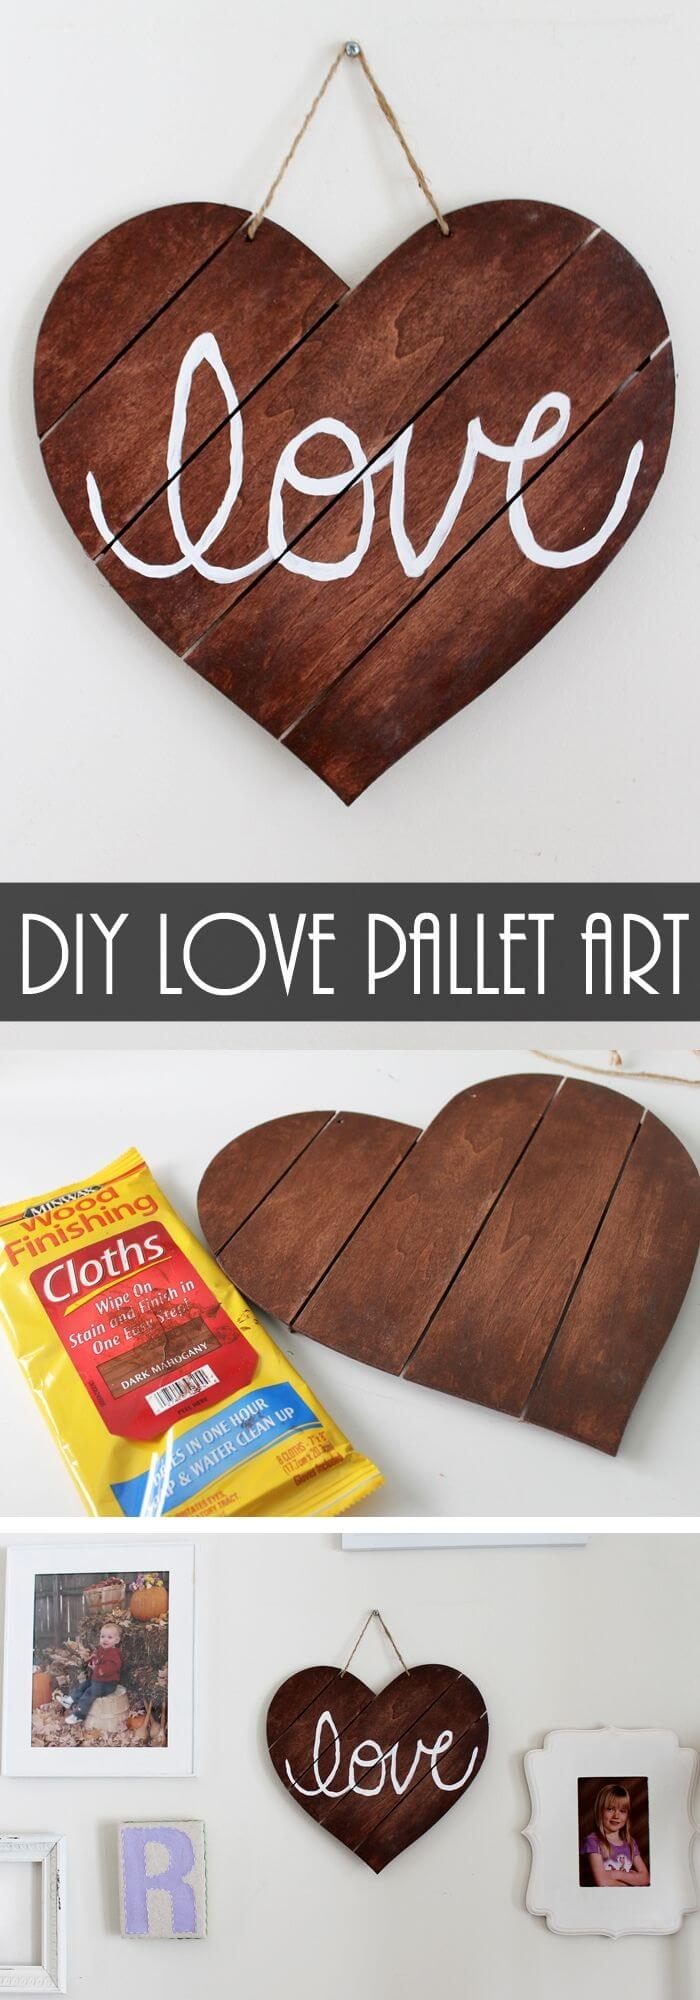 The twine sign - Rustic Wood Heart Projects & Ideas